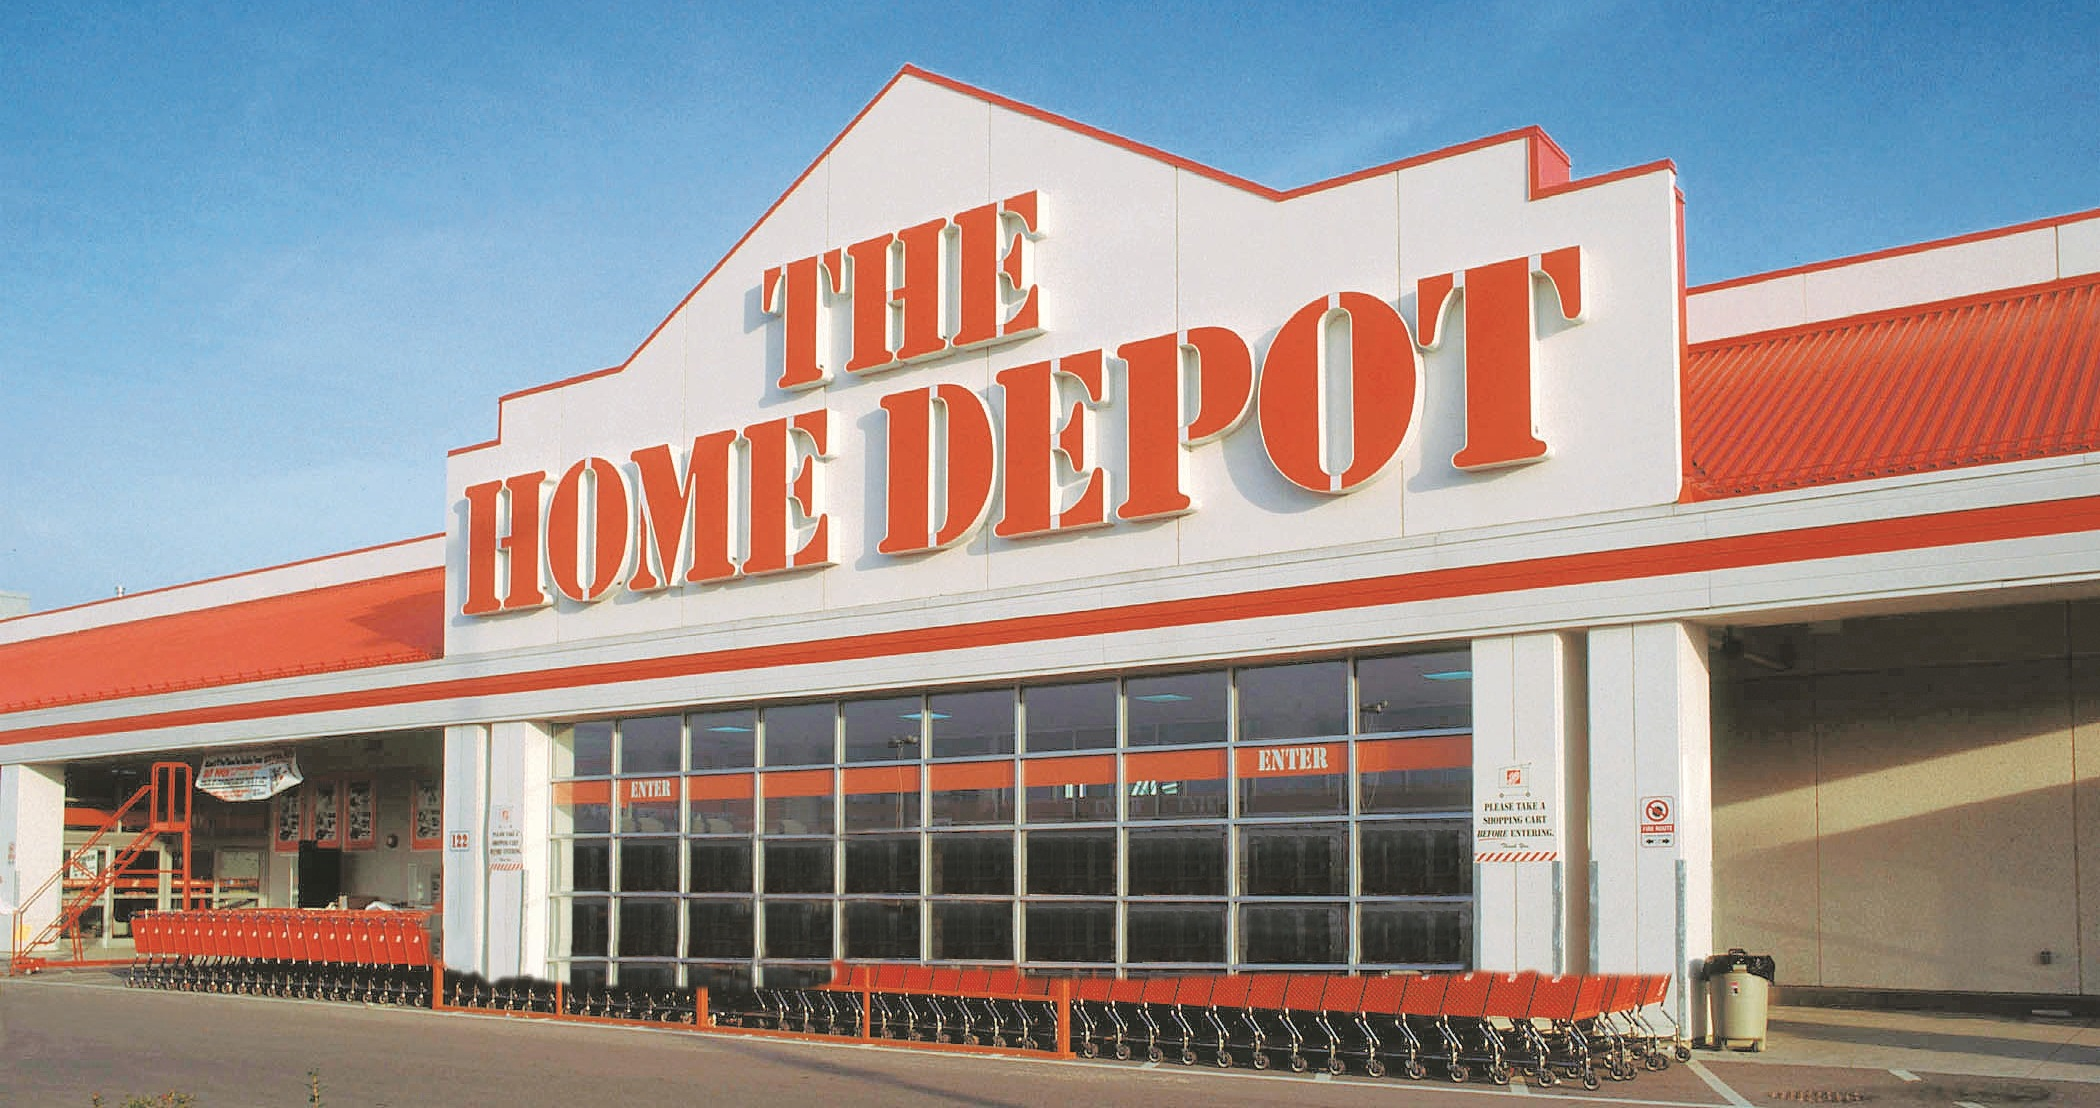 home depot customer data leaked again - Home Depot